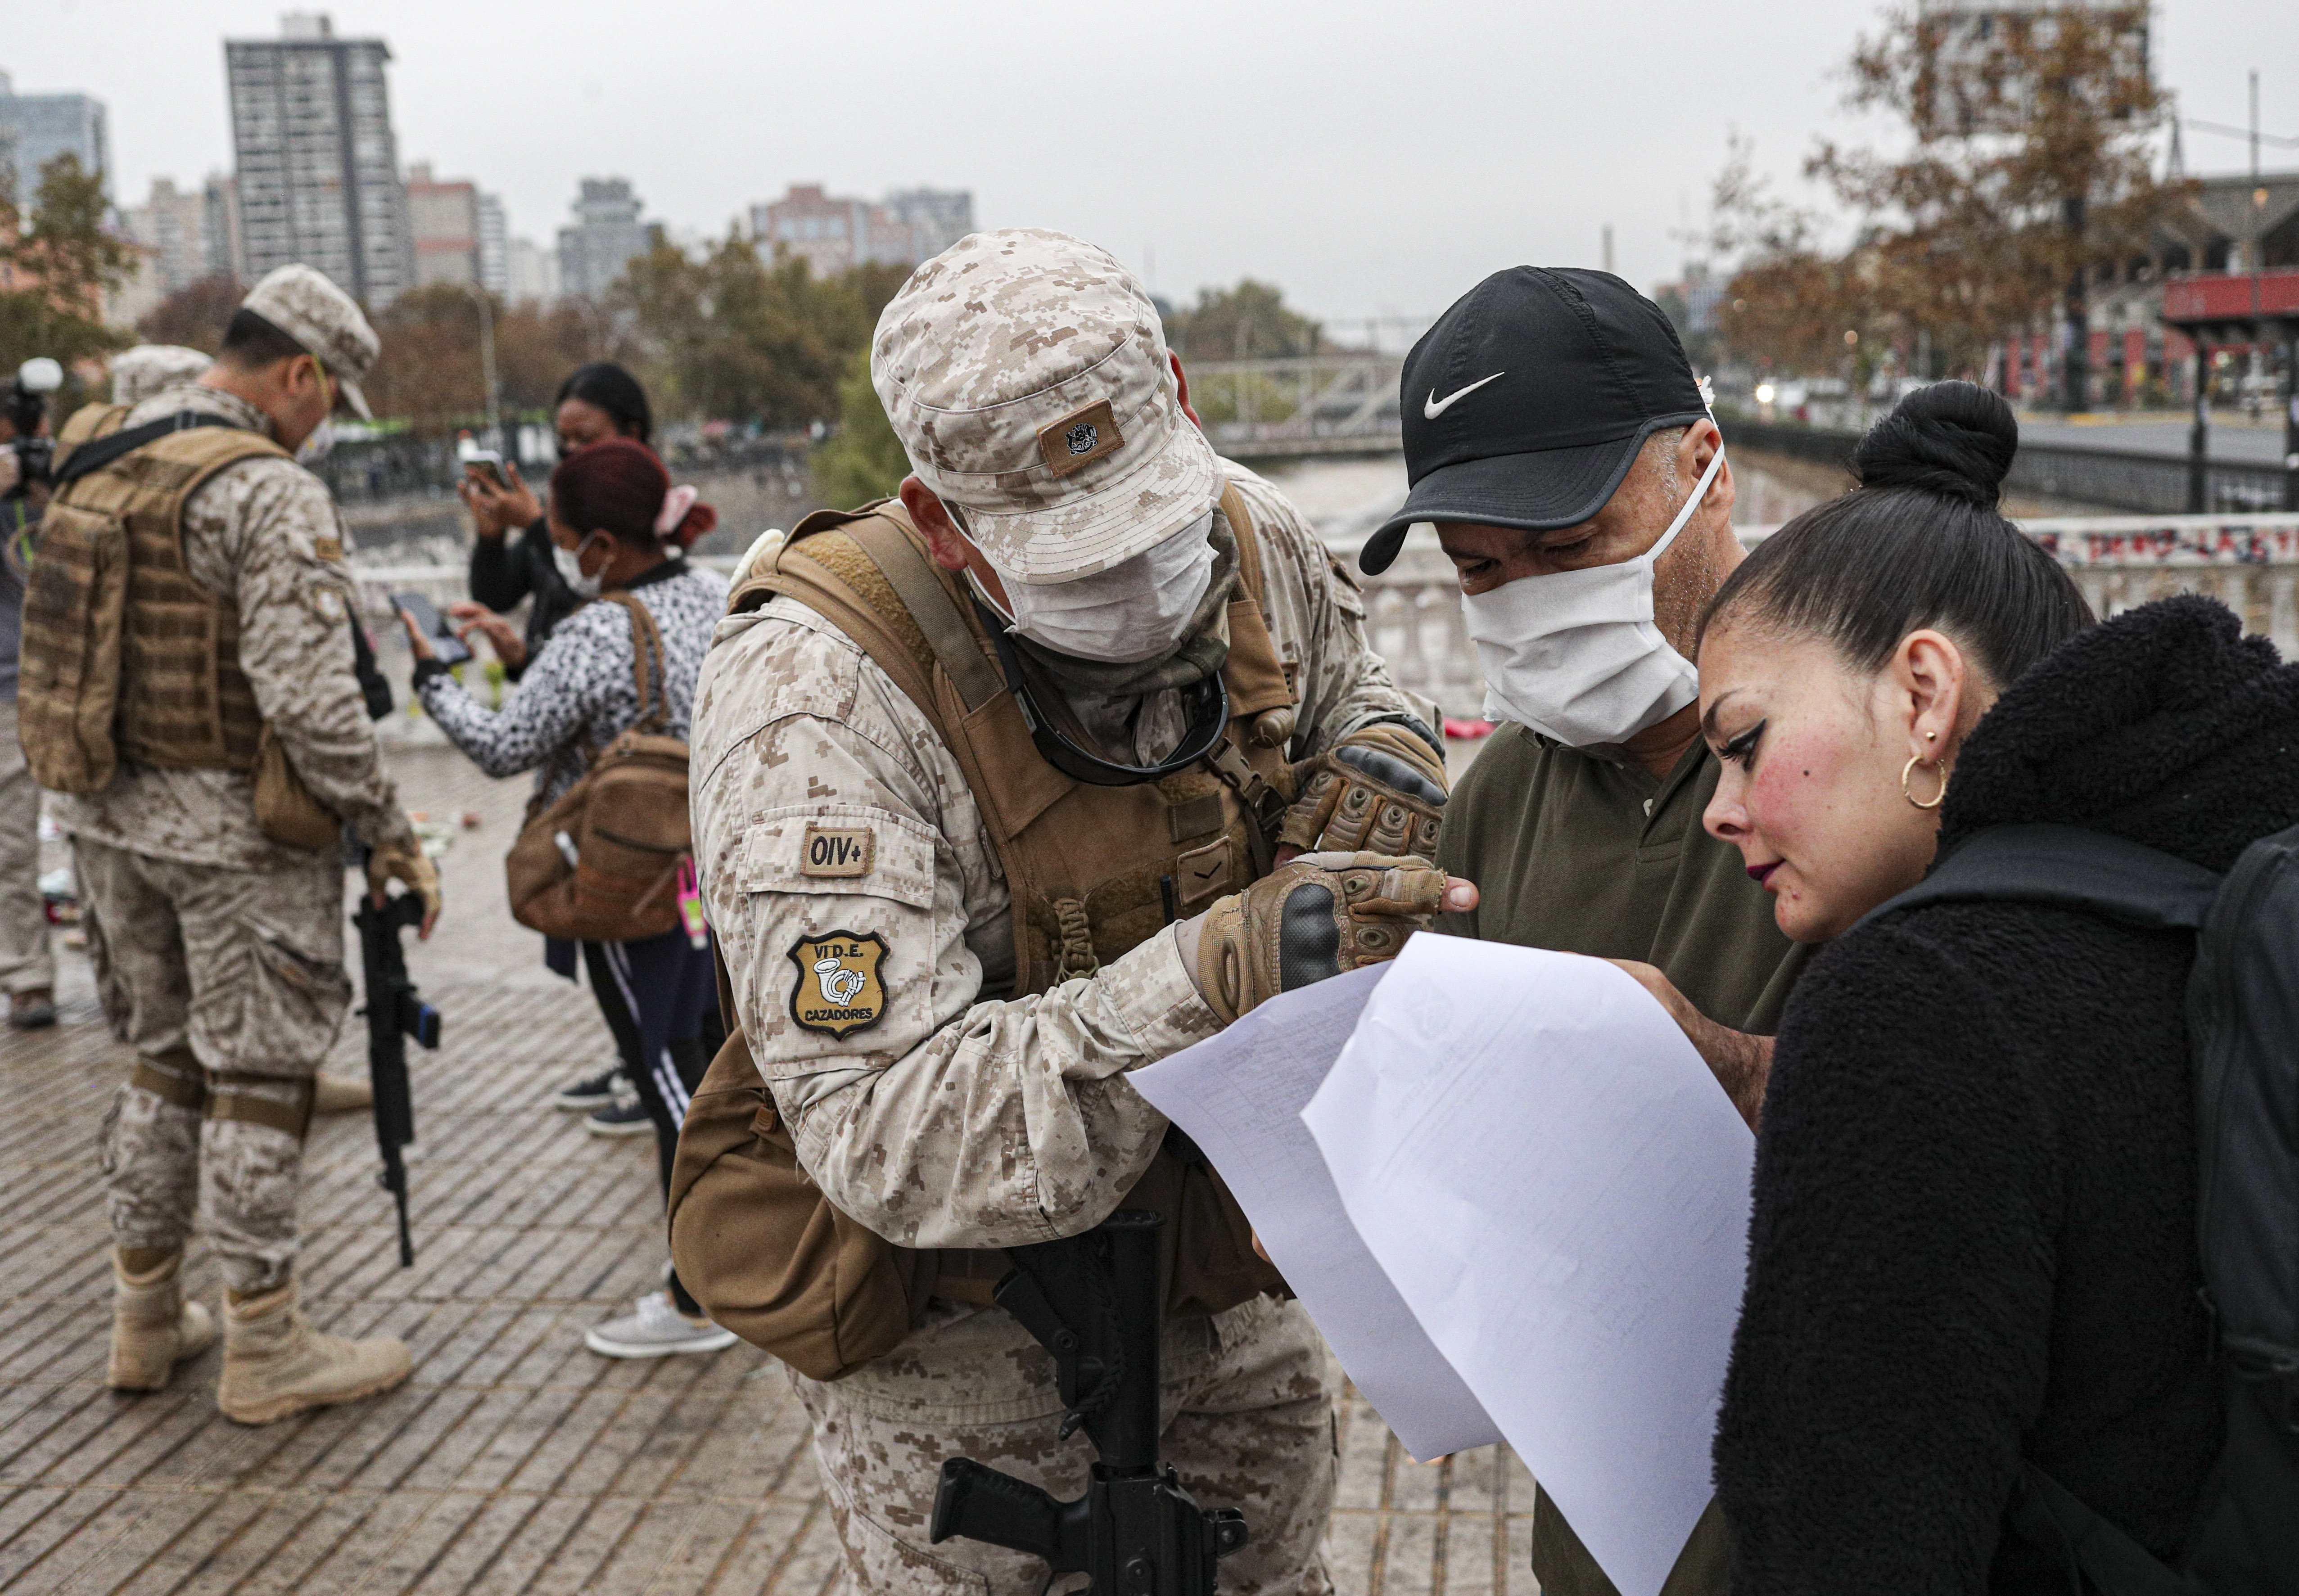 A soldier looks for names on a letter that gives people permission to be in transit, at a checkpoint that monitors the entry of people at the city limit of Santiago, Chile